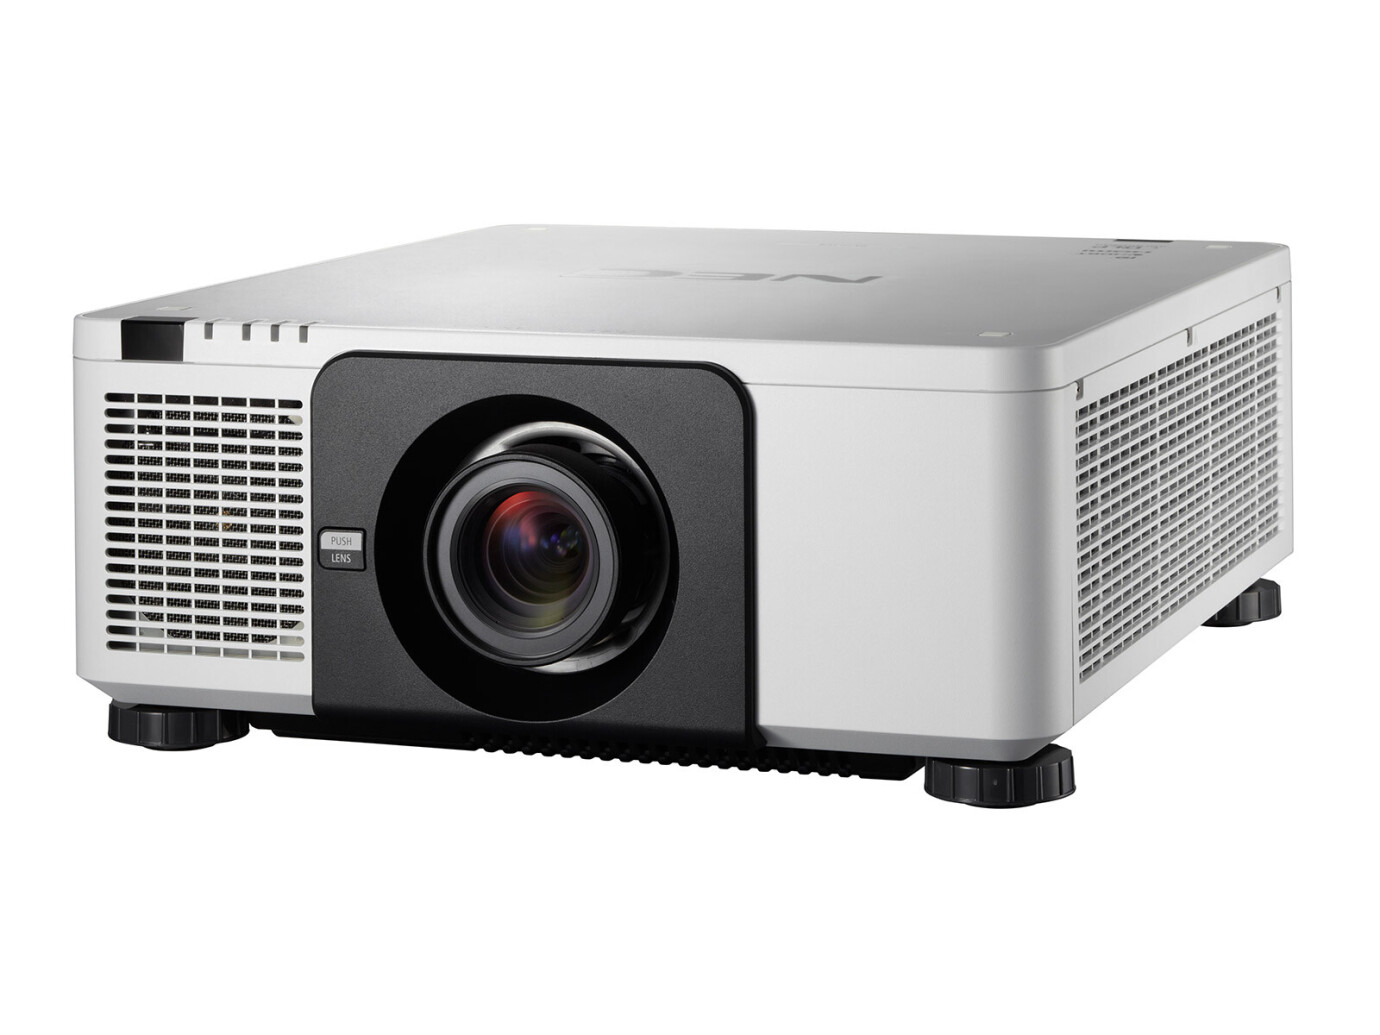 NEC PX1004UL-WH (with NP18ZL lens)